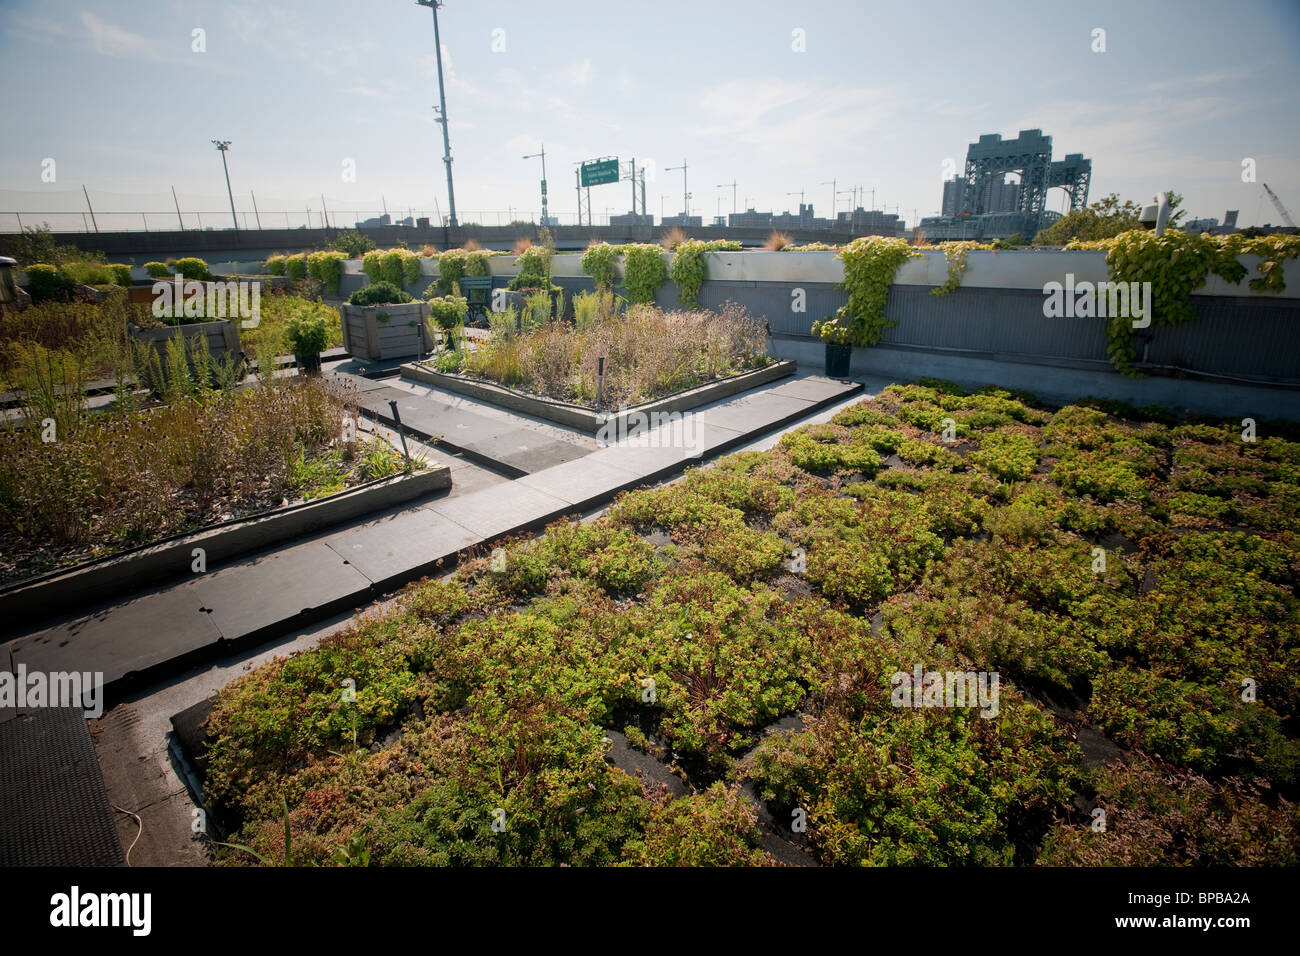 The 5 Boro Green Roof Garden on the NYC Parks and Recreation Dept. administration building on Randall's Island - Stock Image